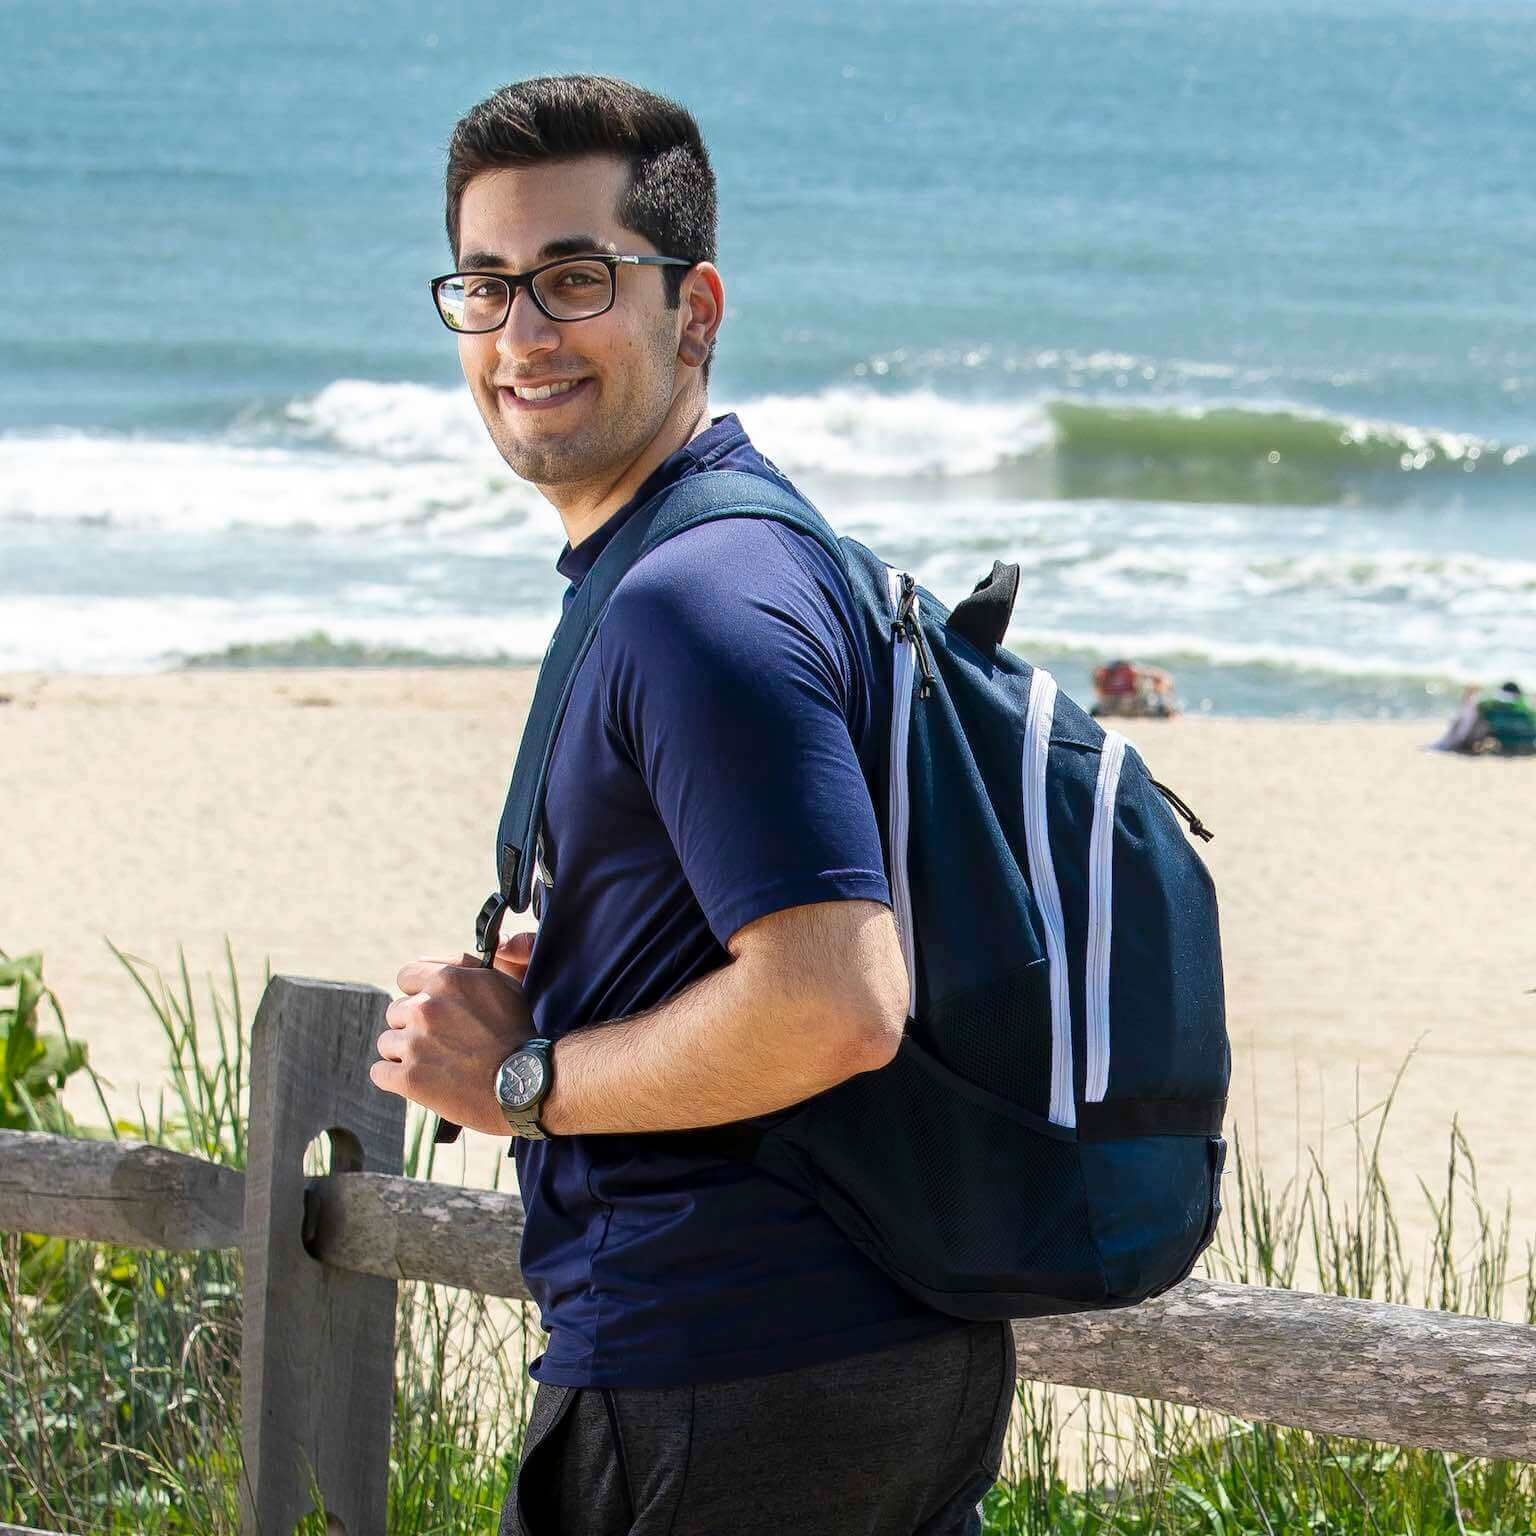 Mehdi Husaini walking by the beach with a backpack.